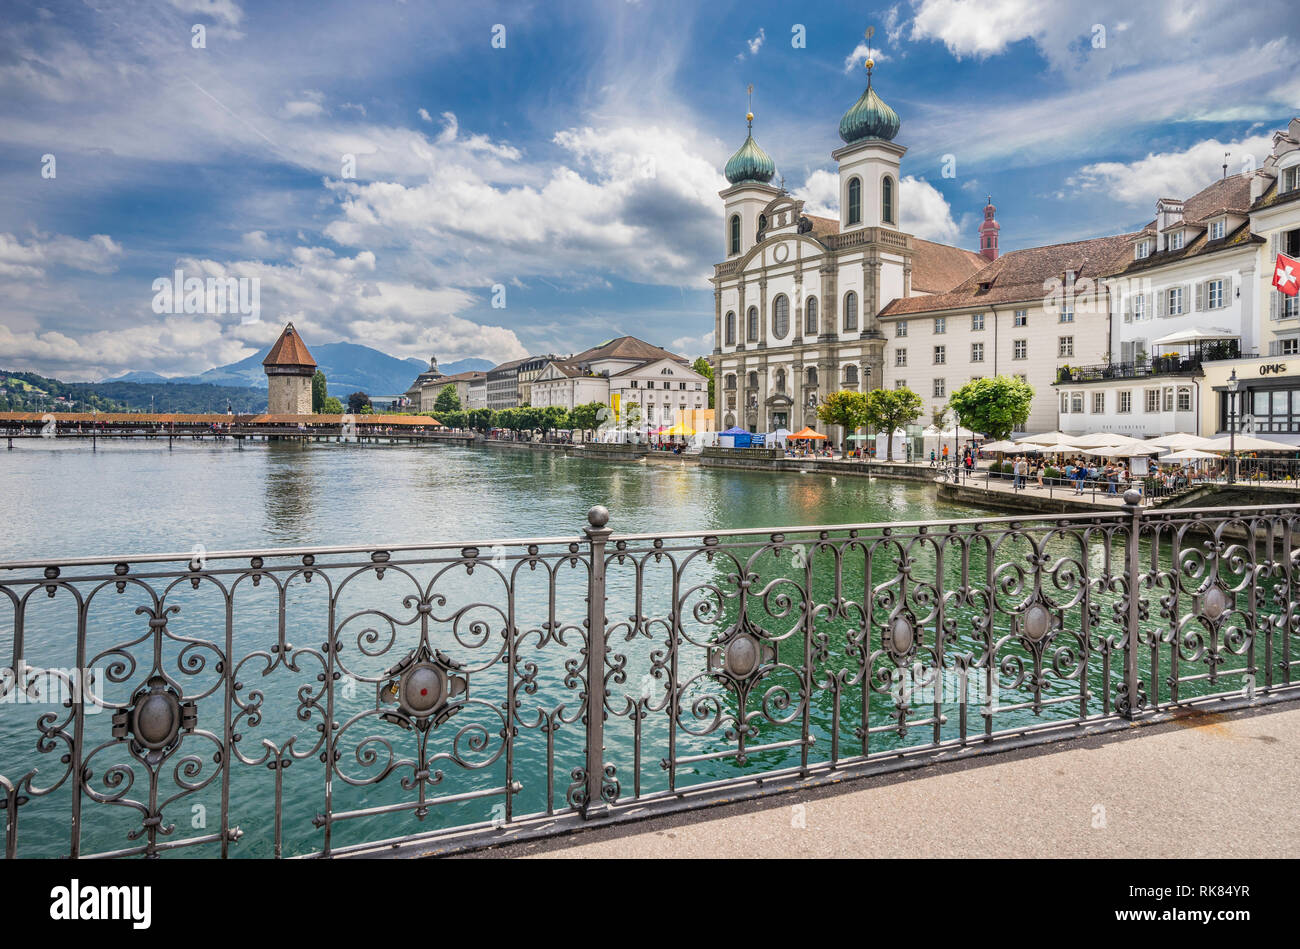 river Reuss with view of Lucerne Jesuit Church and the iconic Kapellbrücke (Chapel Bridge), Lucerne, Canton Lucerne, Switzerland - Stock Image